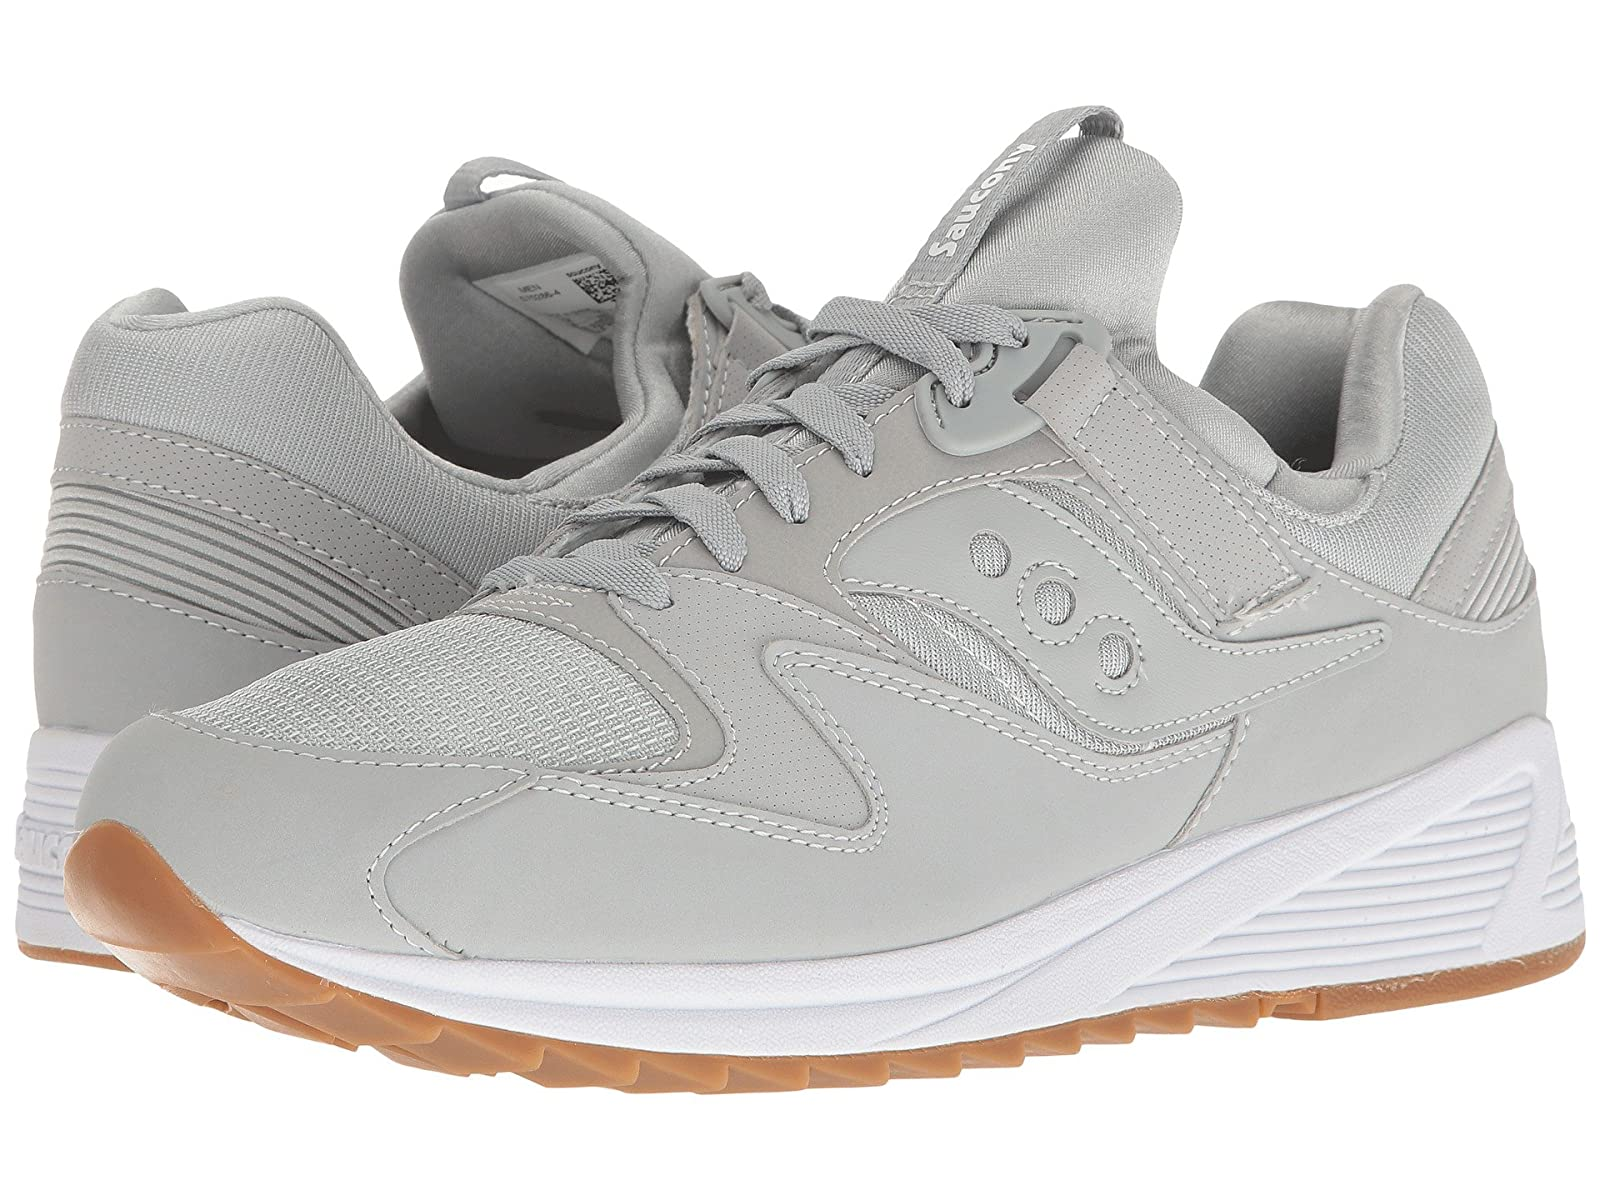 Saucony Originals Grid 8500Cheap and distinctive eye-catching shoes